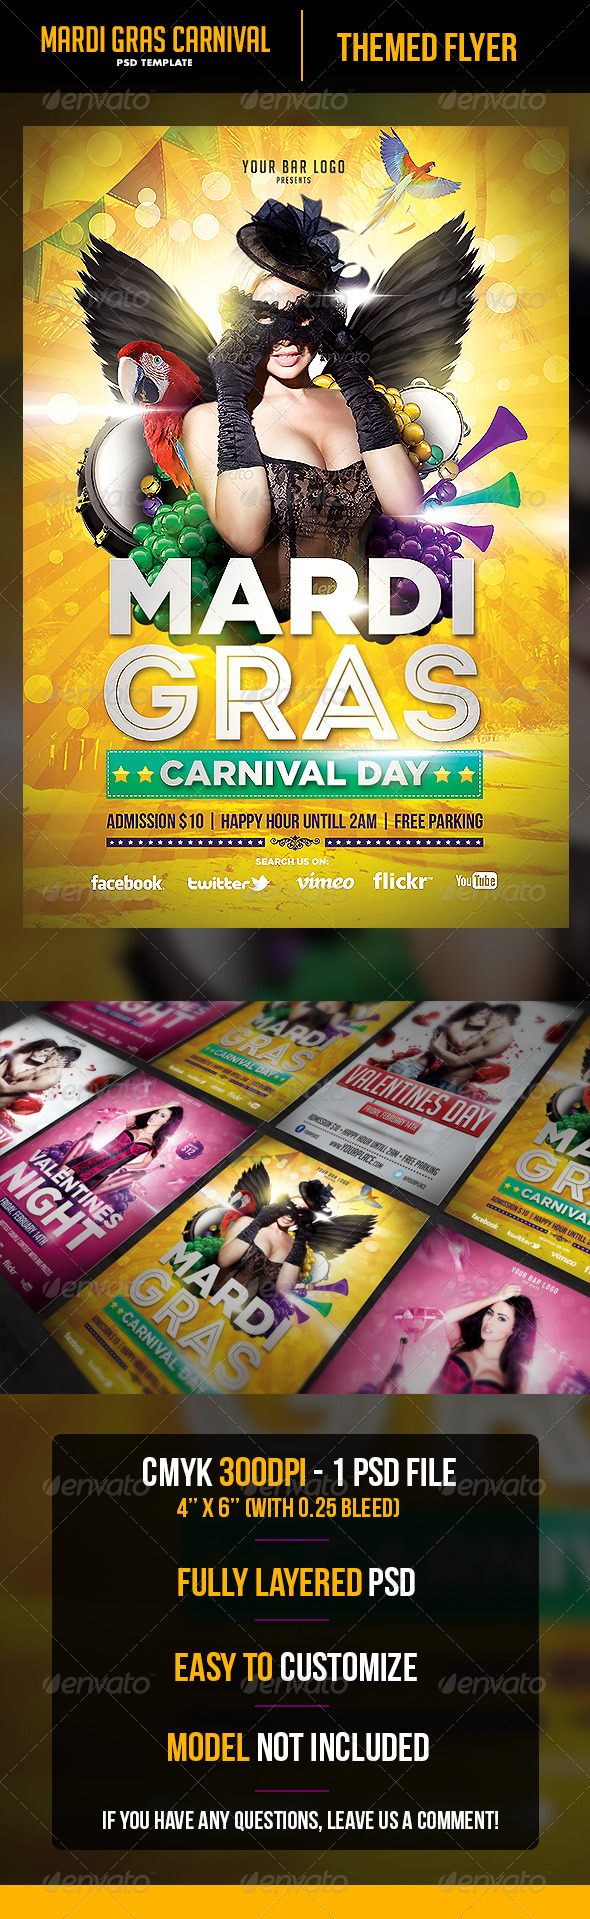 Mardi Gras Flyer Template - Flyers Print Templates